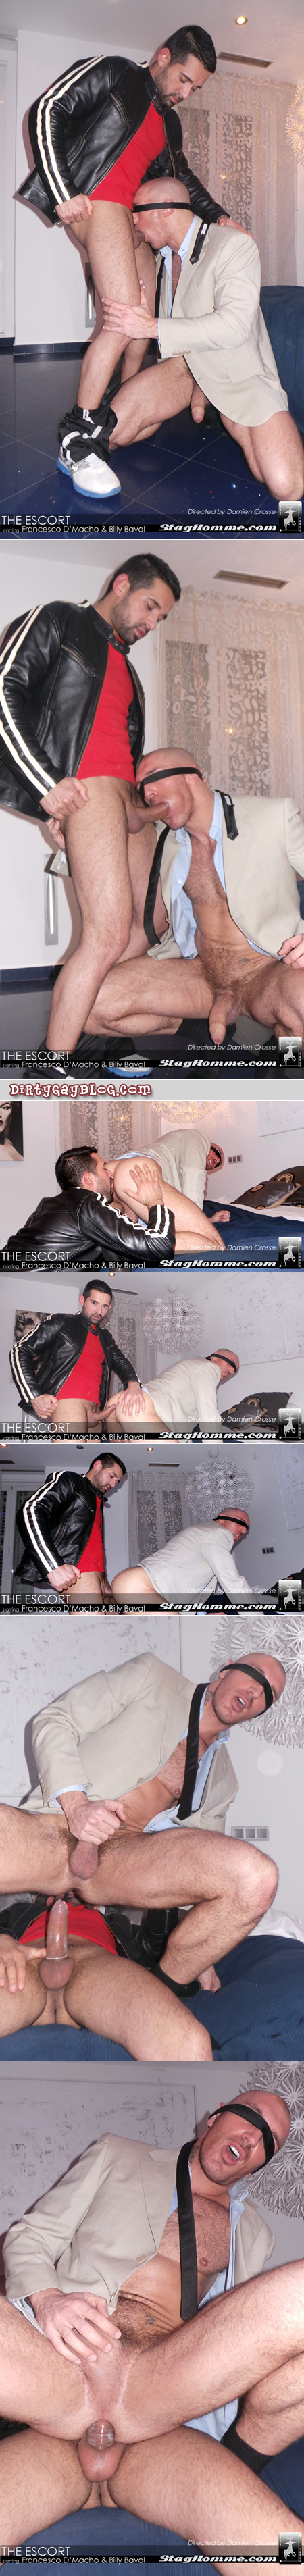 Hairy, muscular man in a suit hires a male escort to come over and rim and fuck his bubble butt while he's blindfolded